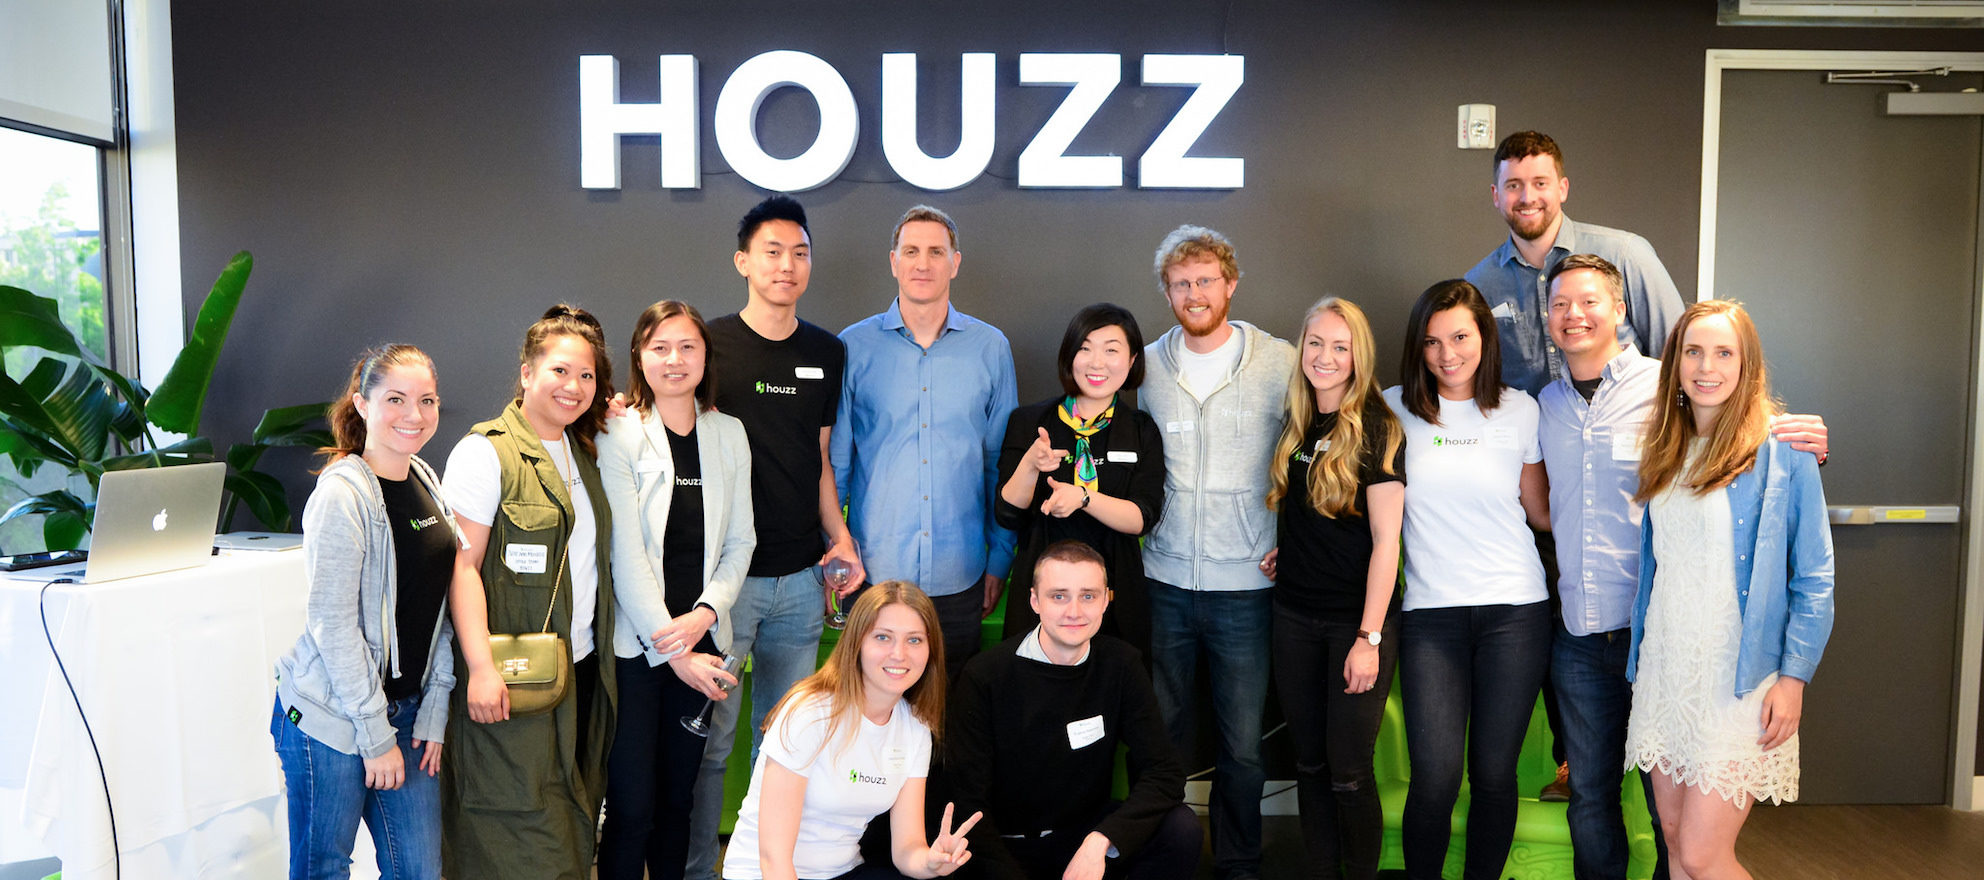 Report: Houzz lays off 180 employees, eyes IPO